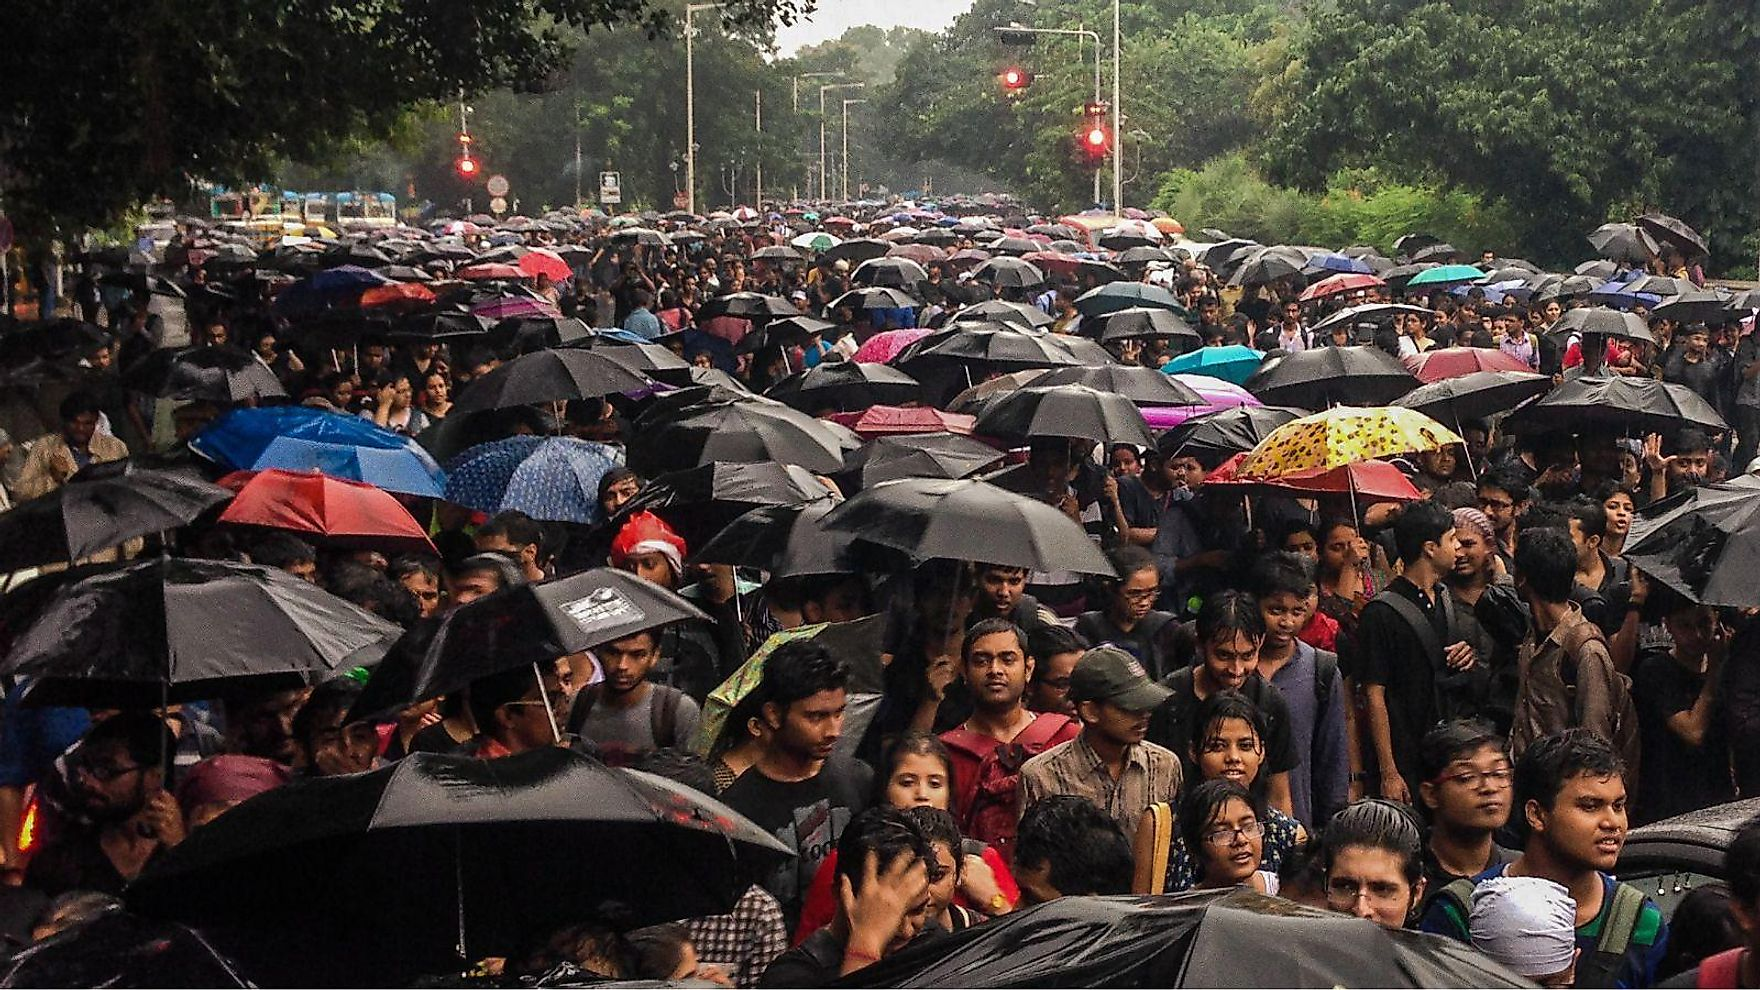 In 2014, a female student at Jadavpur University in Calcutta was molested, and it immediately prompted a response from all students that the authorities need to investigate the crime.Image credit: qz.com